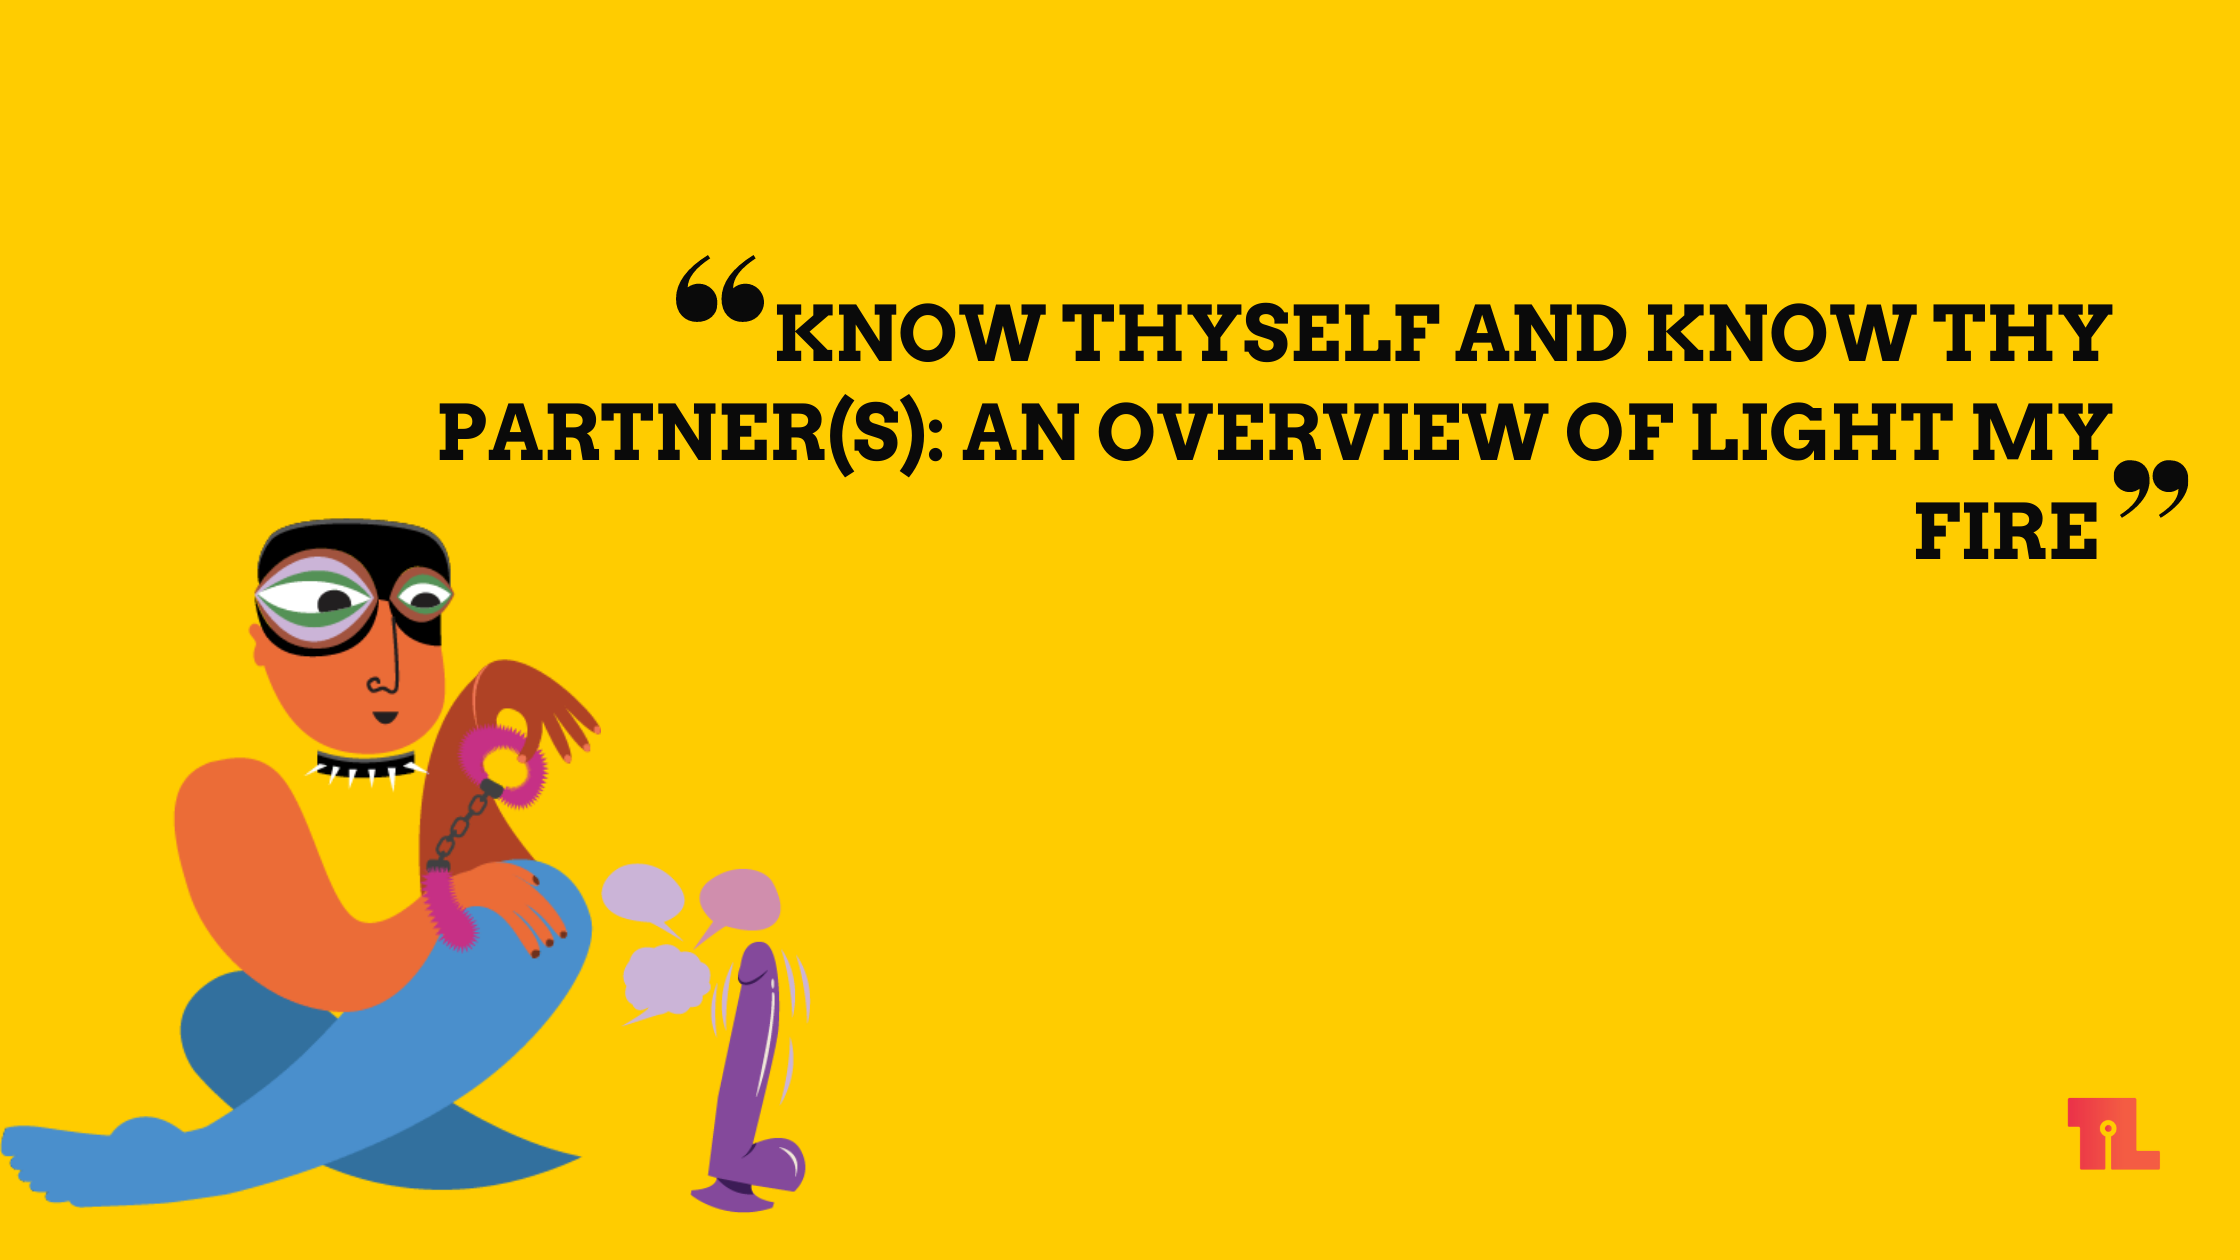 Know Thyself and Know Thy Partner(s): An Overview of Light My Fire